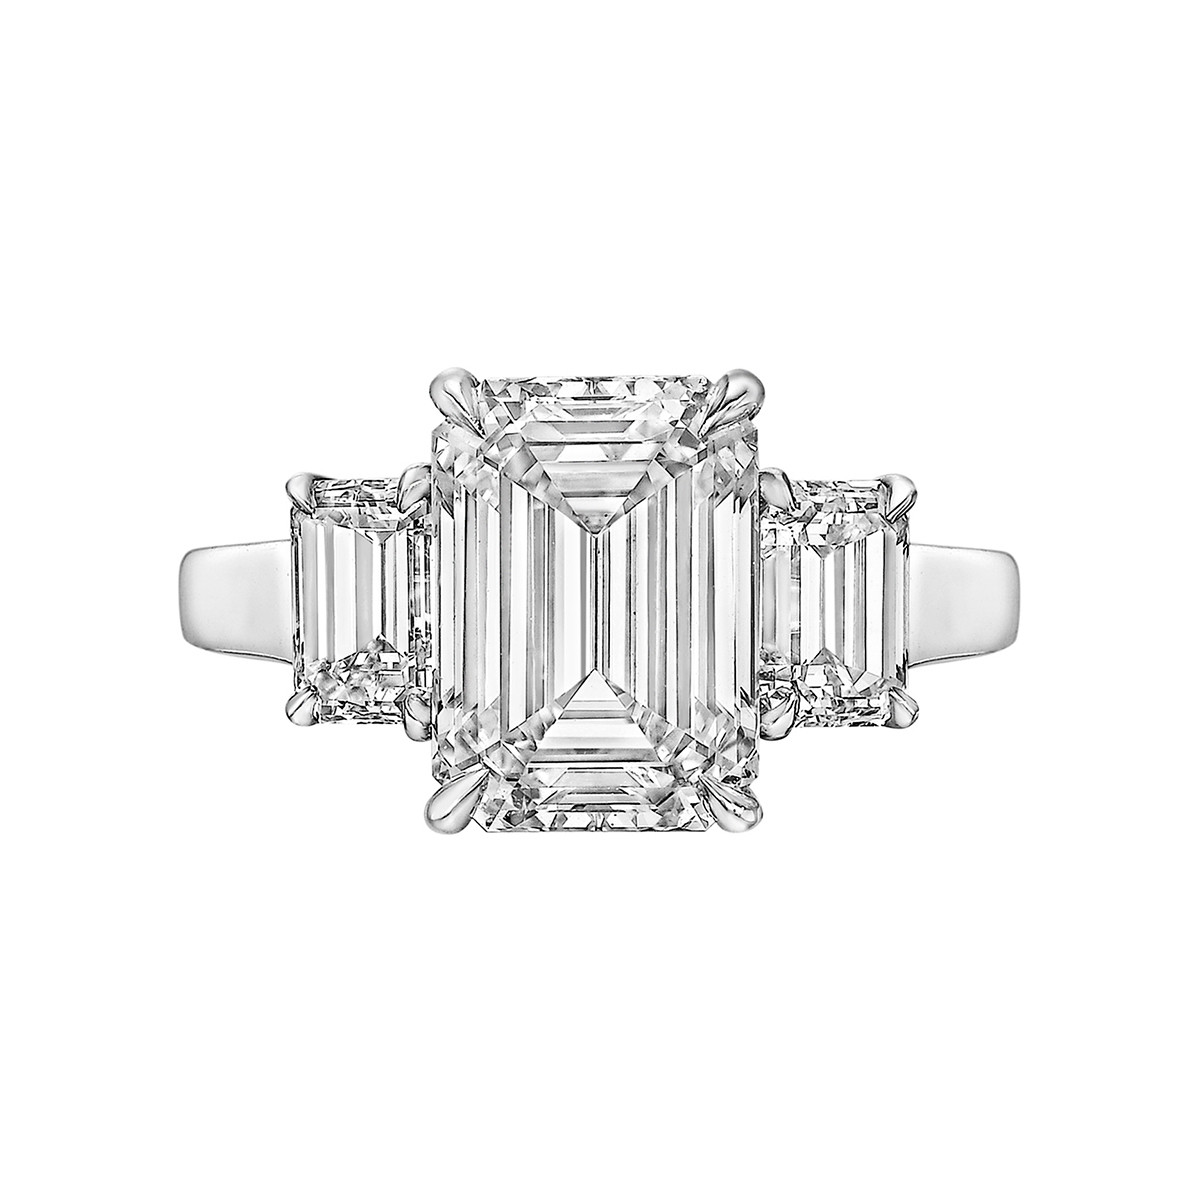 4.01ct Emerald-Cut Diamond Three-Stone Ring